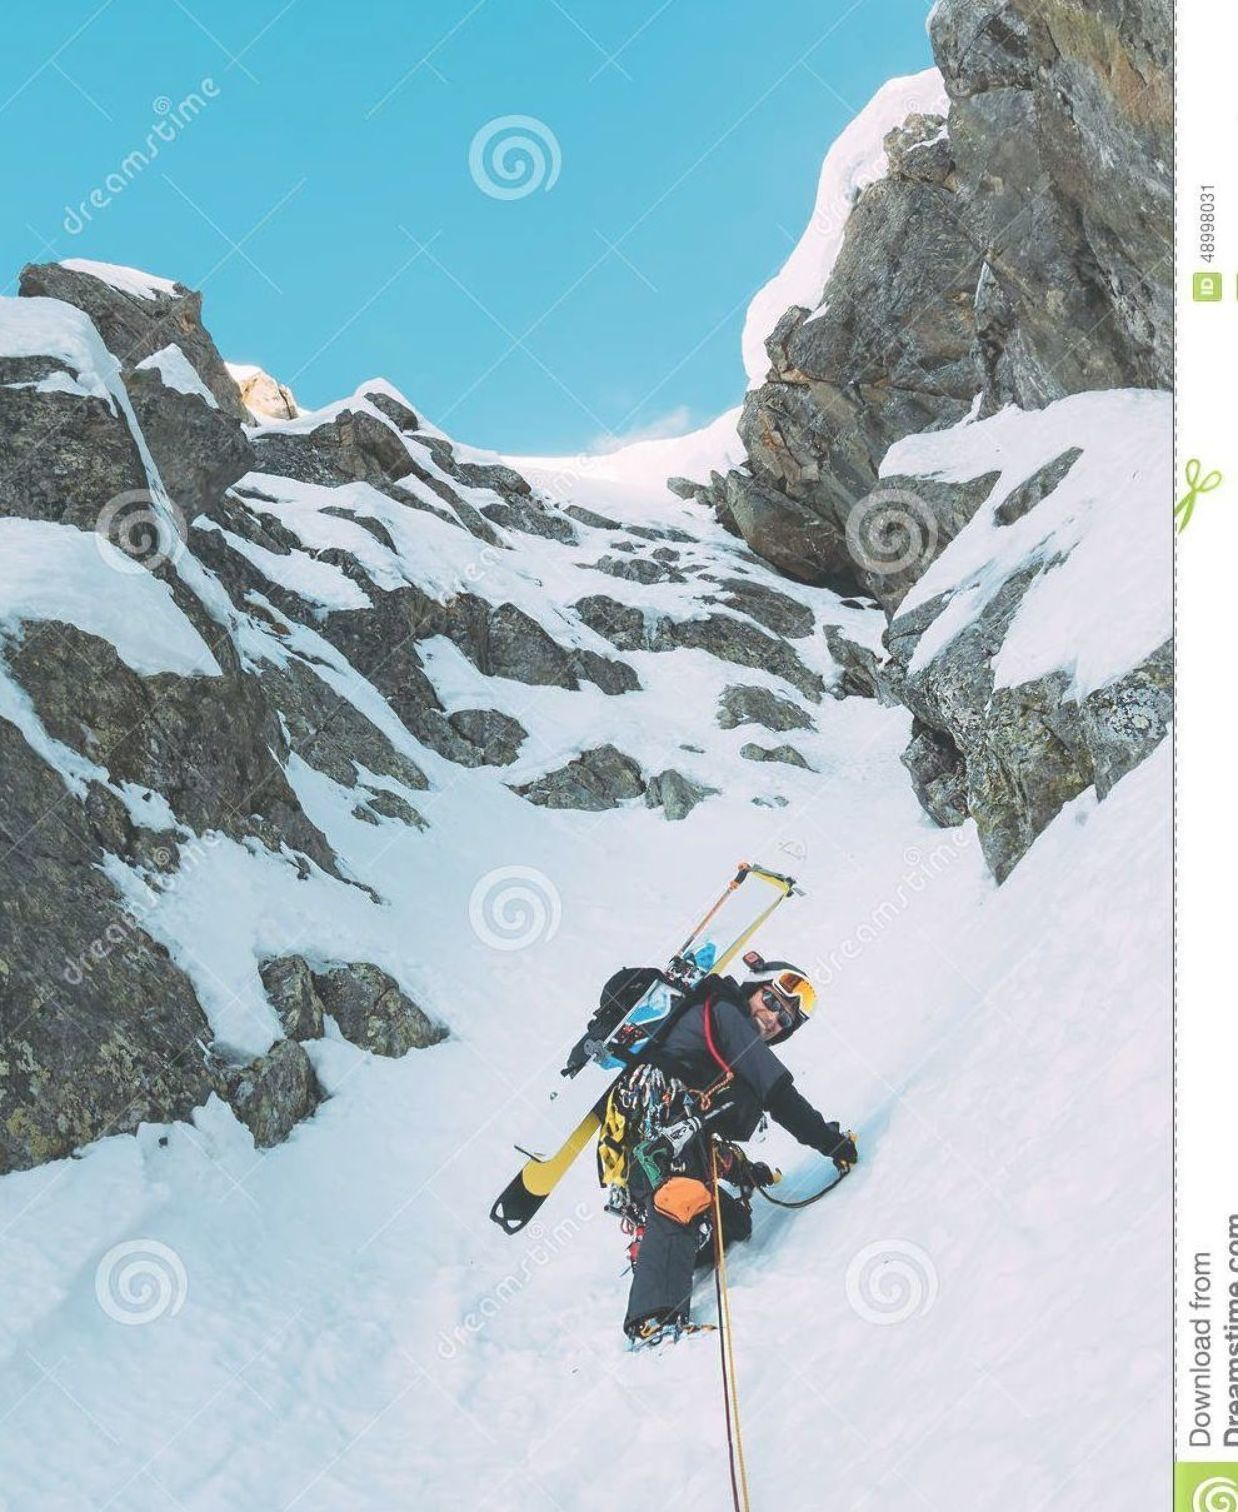 Ice Climbing Mountaineer On A Mixed Route Of Snow And Rock Duri Stock Image  I  Ice Climbing Mountaineer On A Mixed Route Of Snow And Rock Duri Stock Image  Image of clim...